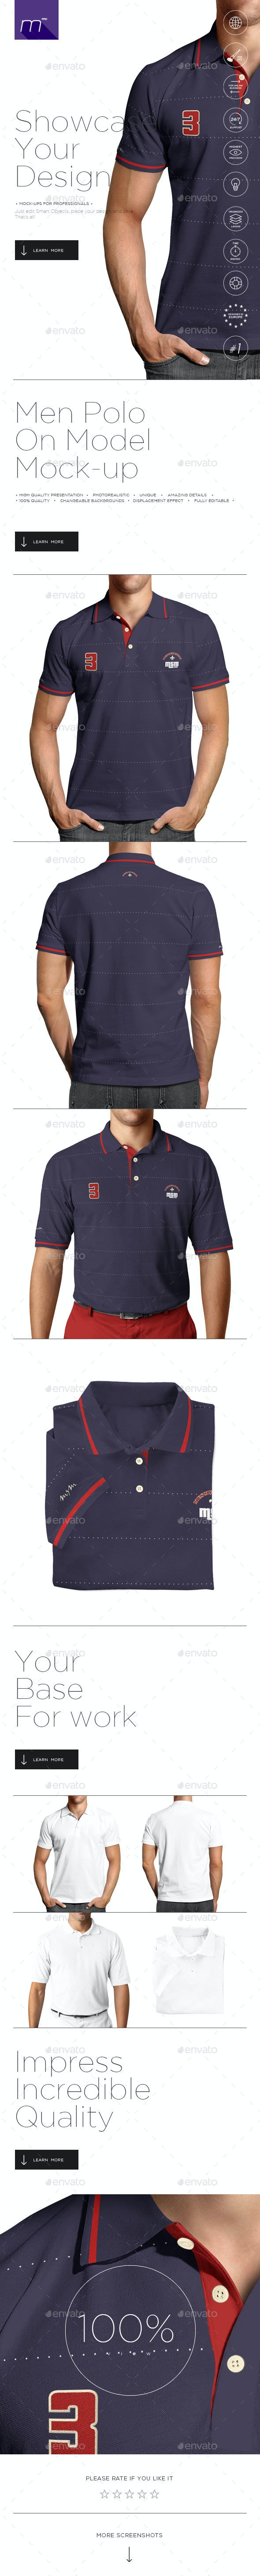 Polo Shirt on Model Mock-up - Miscellaneous Apparel